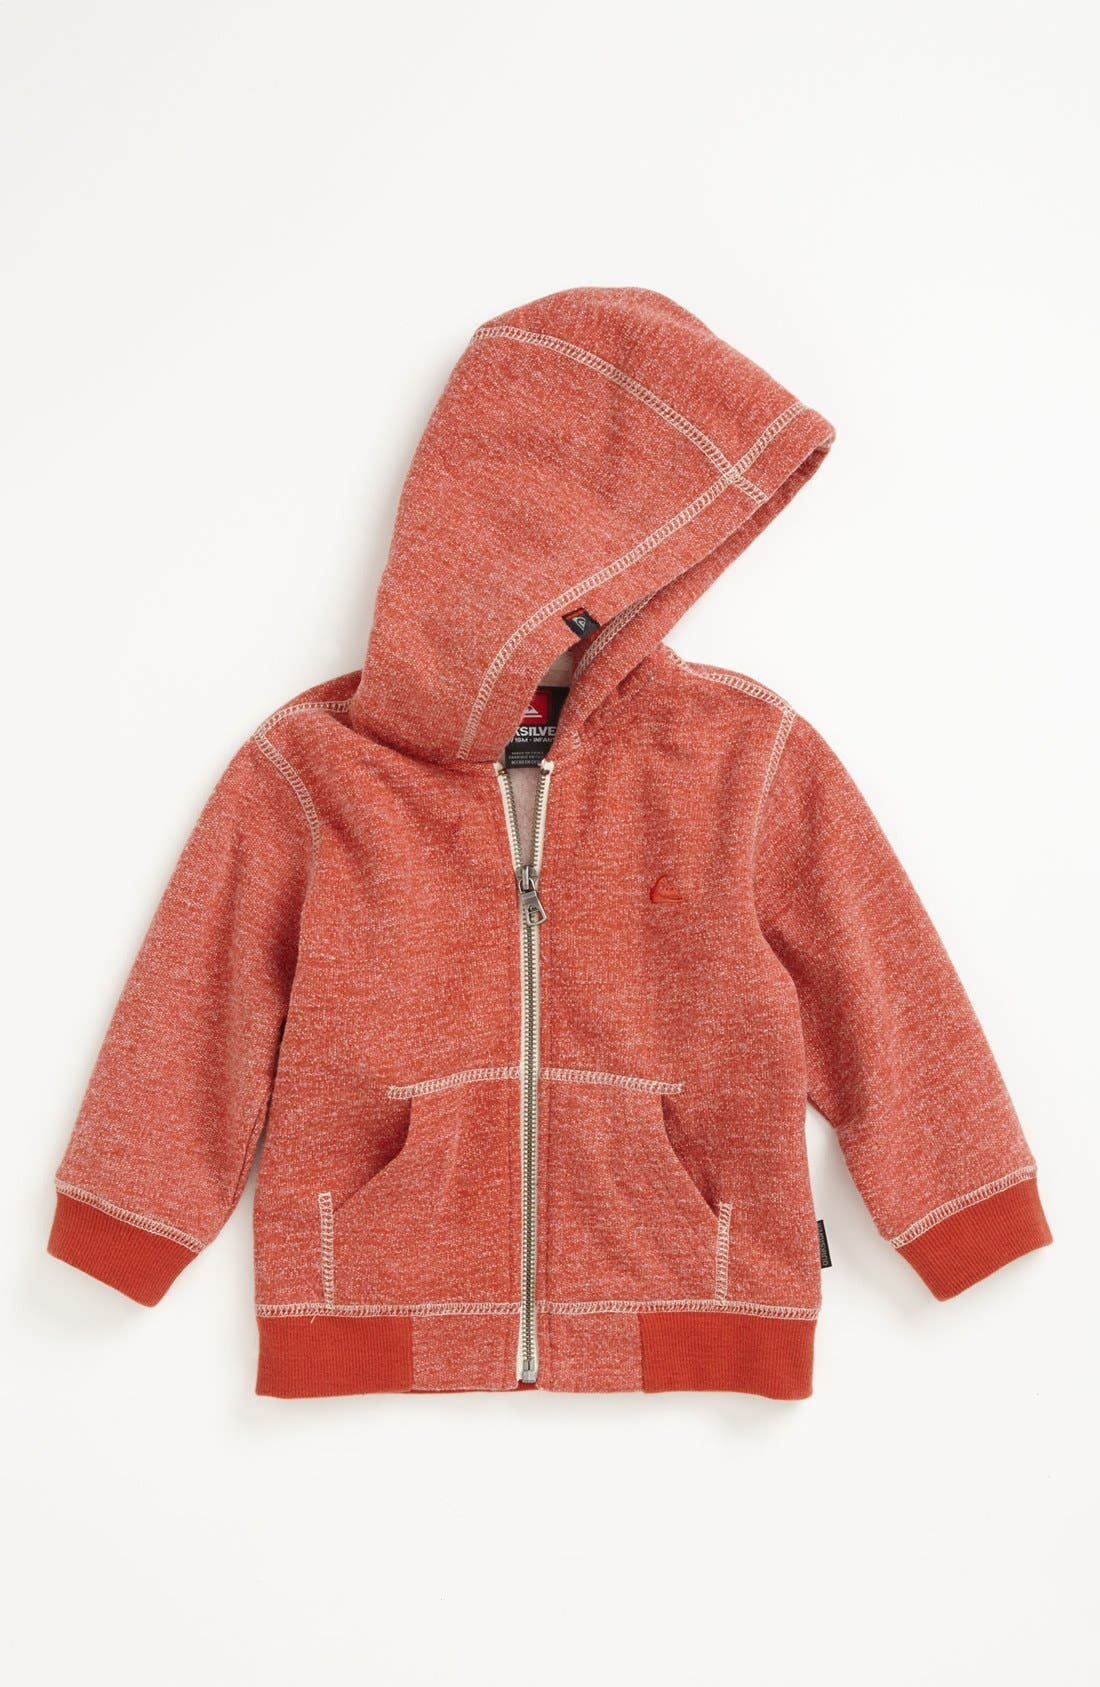 Alternate Image 1 Selected - Quiksilver 'Hartley' Hoodie (Toddler Boys)